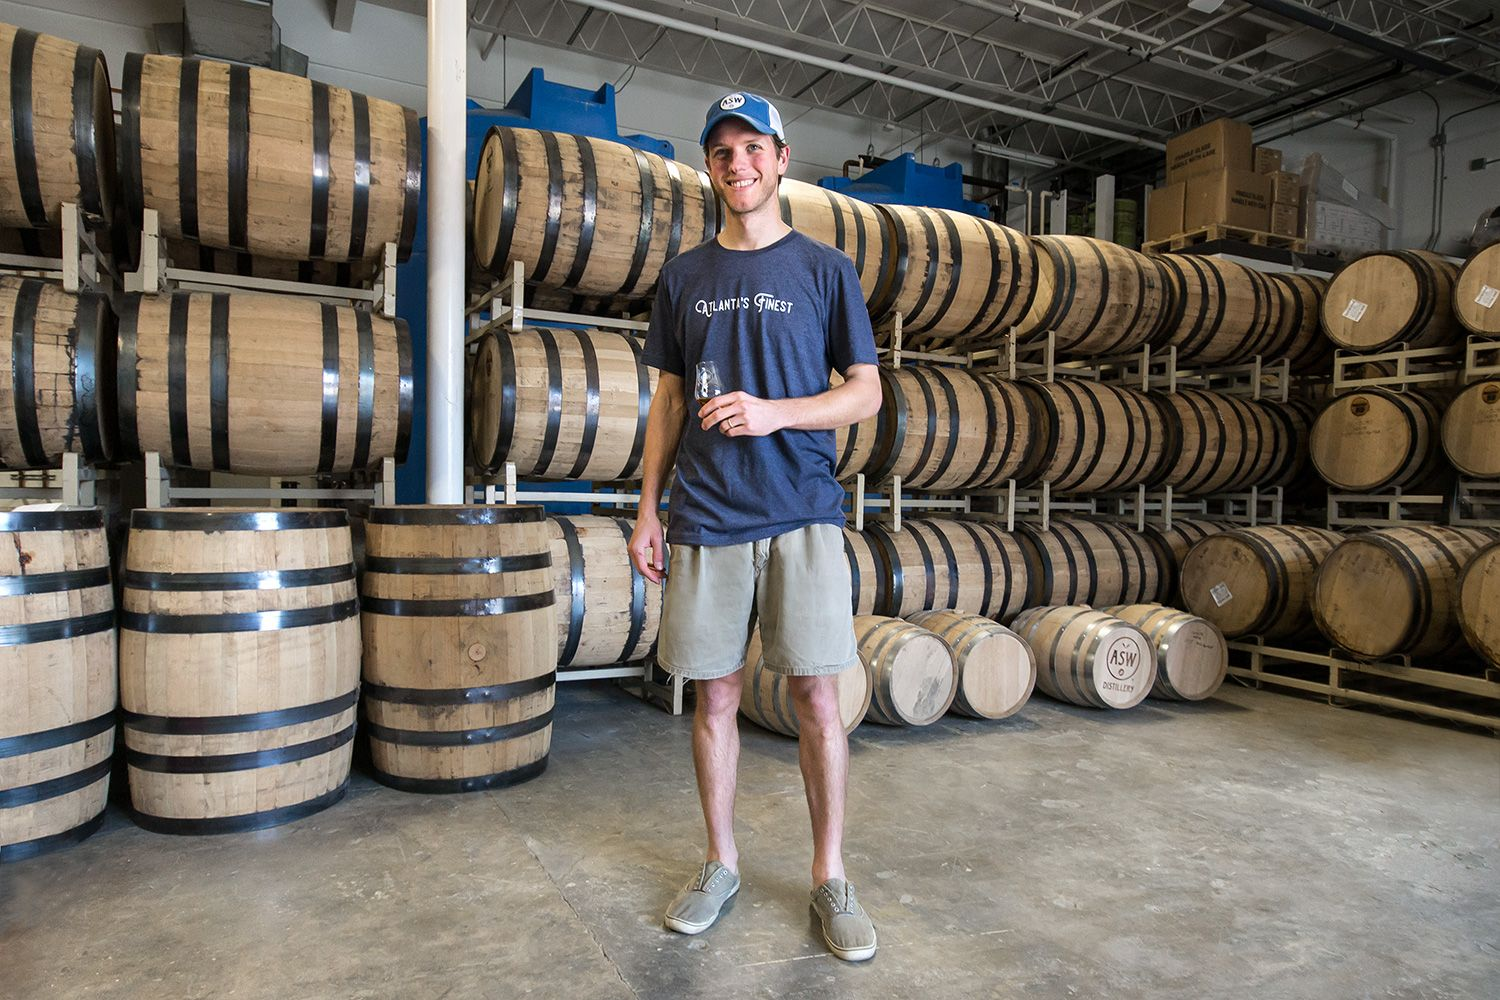 Employee Chad tasting whiskey inside the rick house.